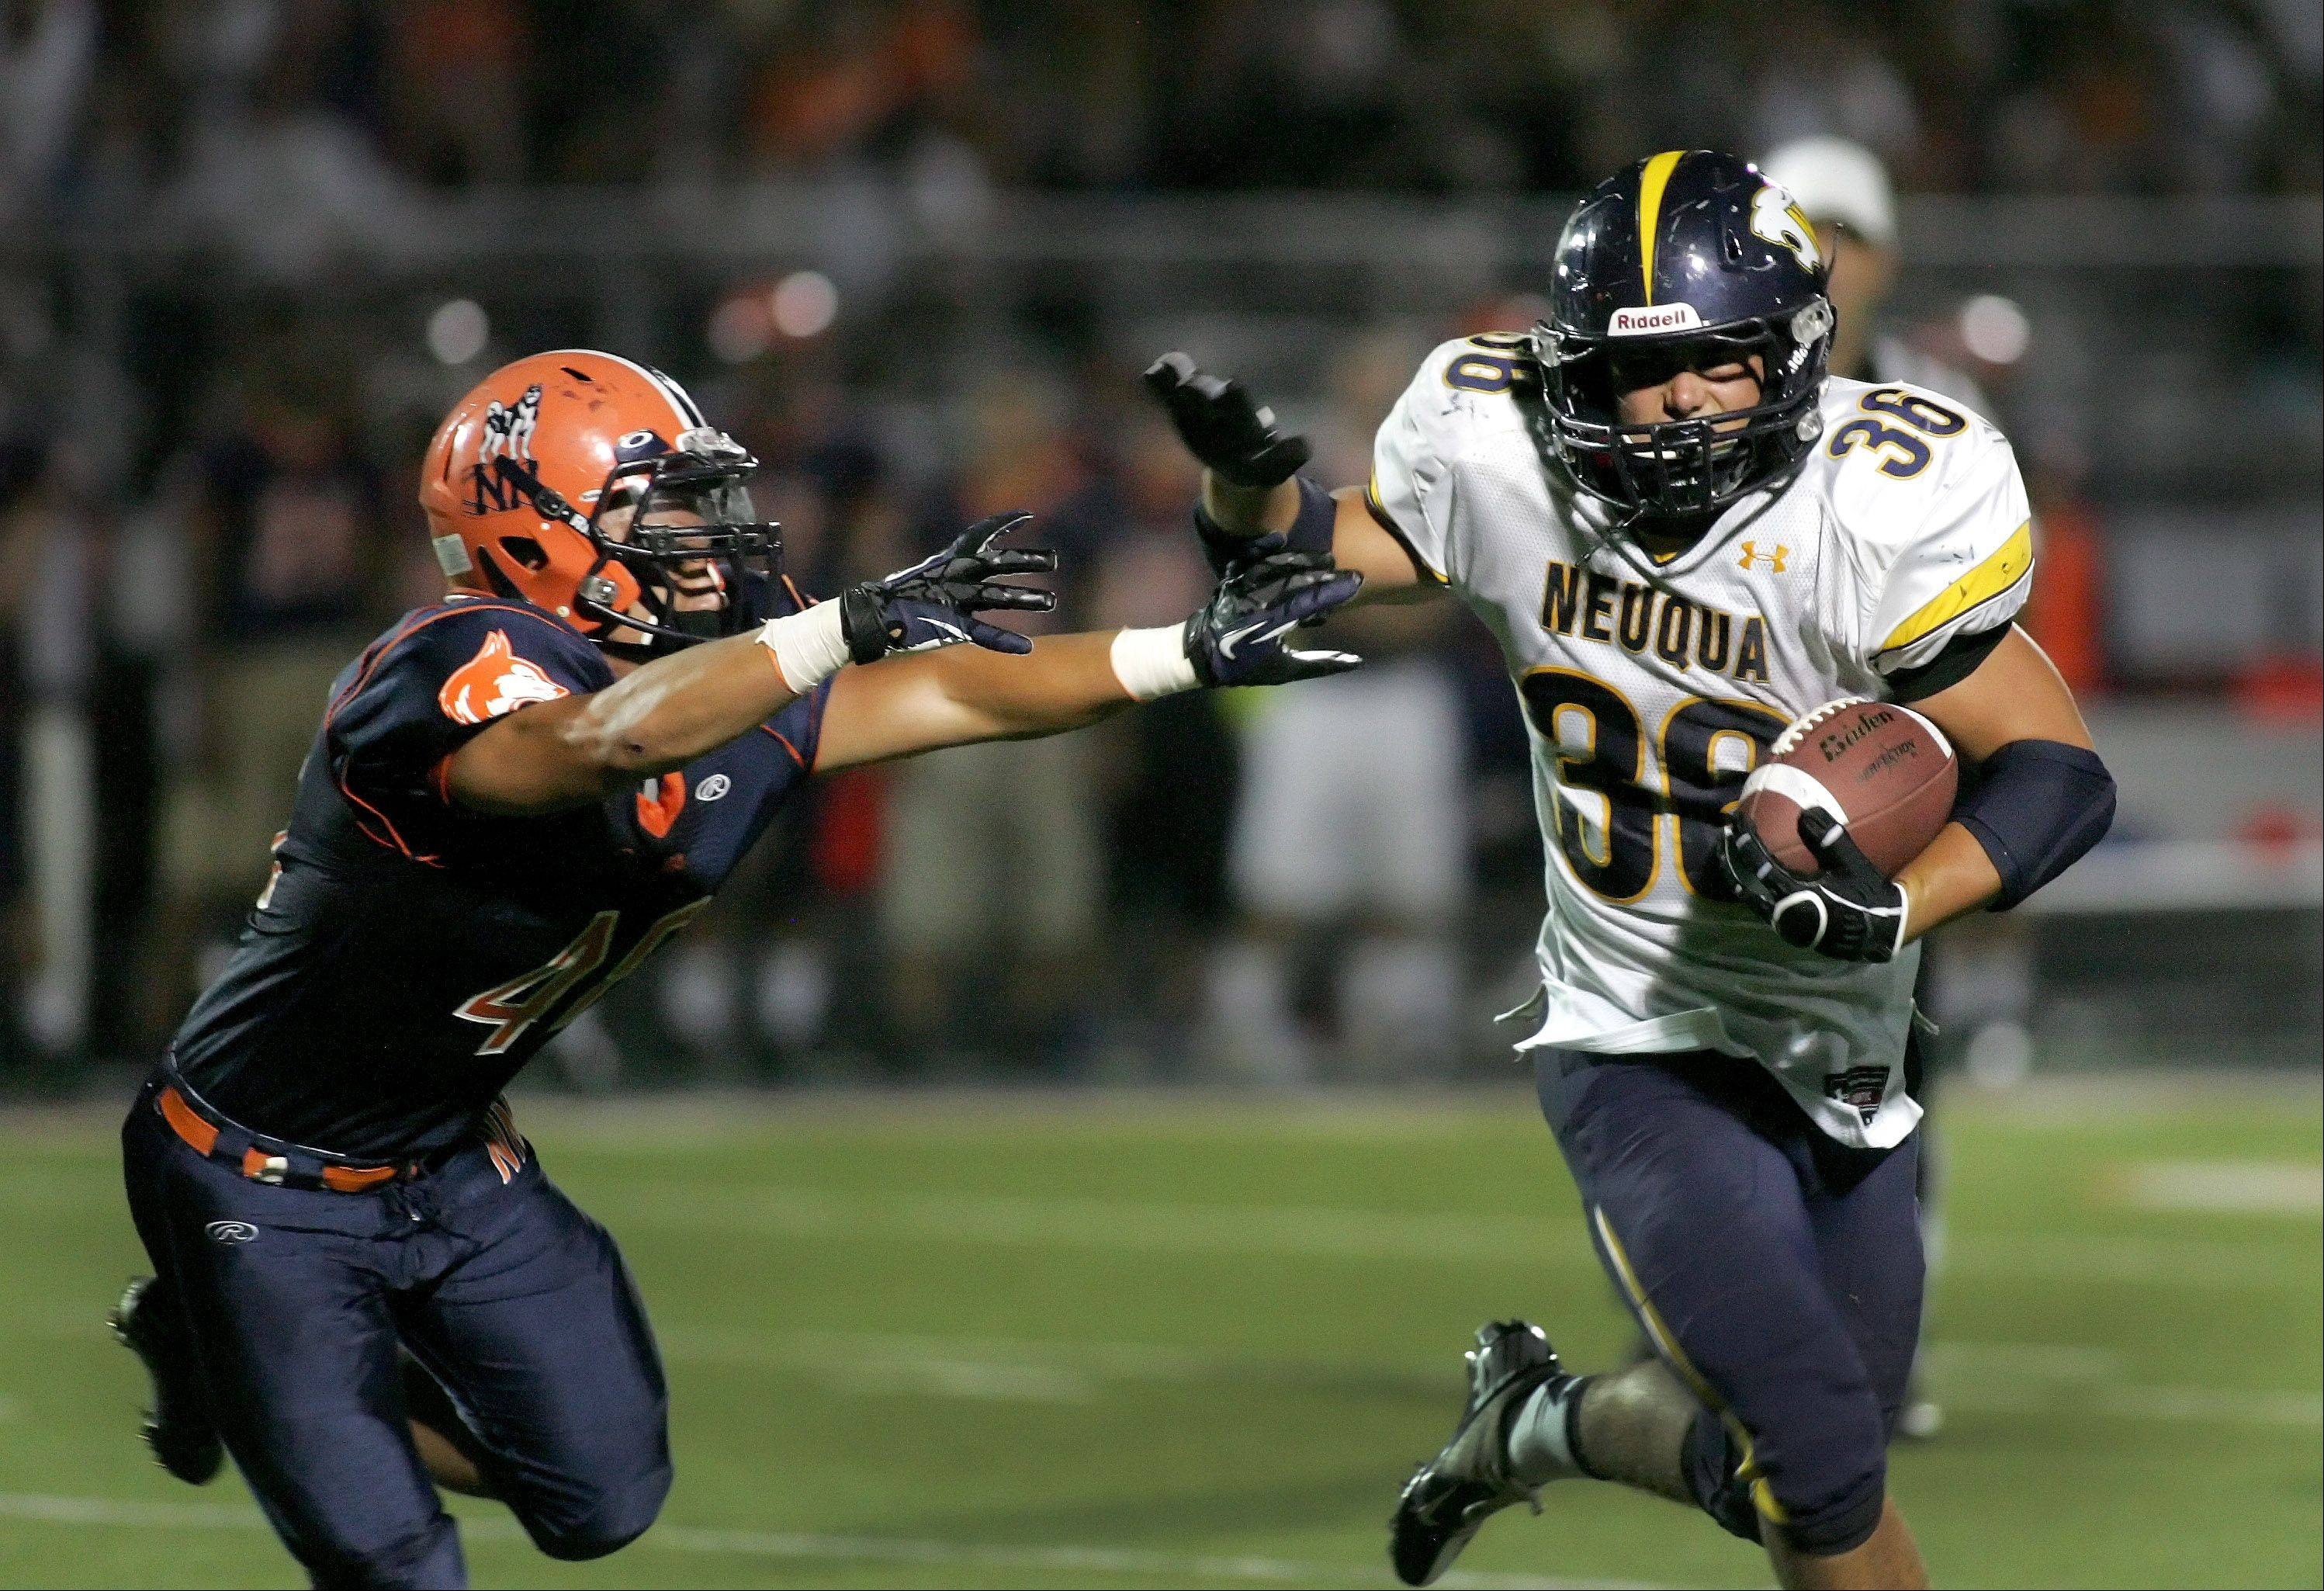 Joey Rhattigan of Neuqua Valley, right, holds off Eric Montgomery, left, of Naperville North in football action Friday in Naperville.